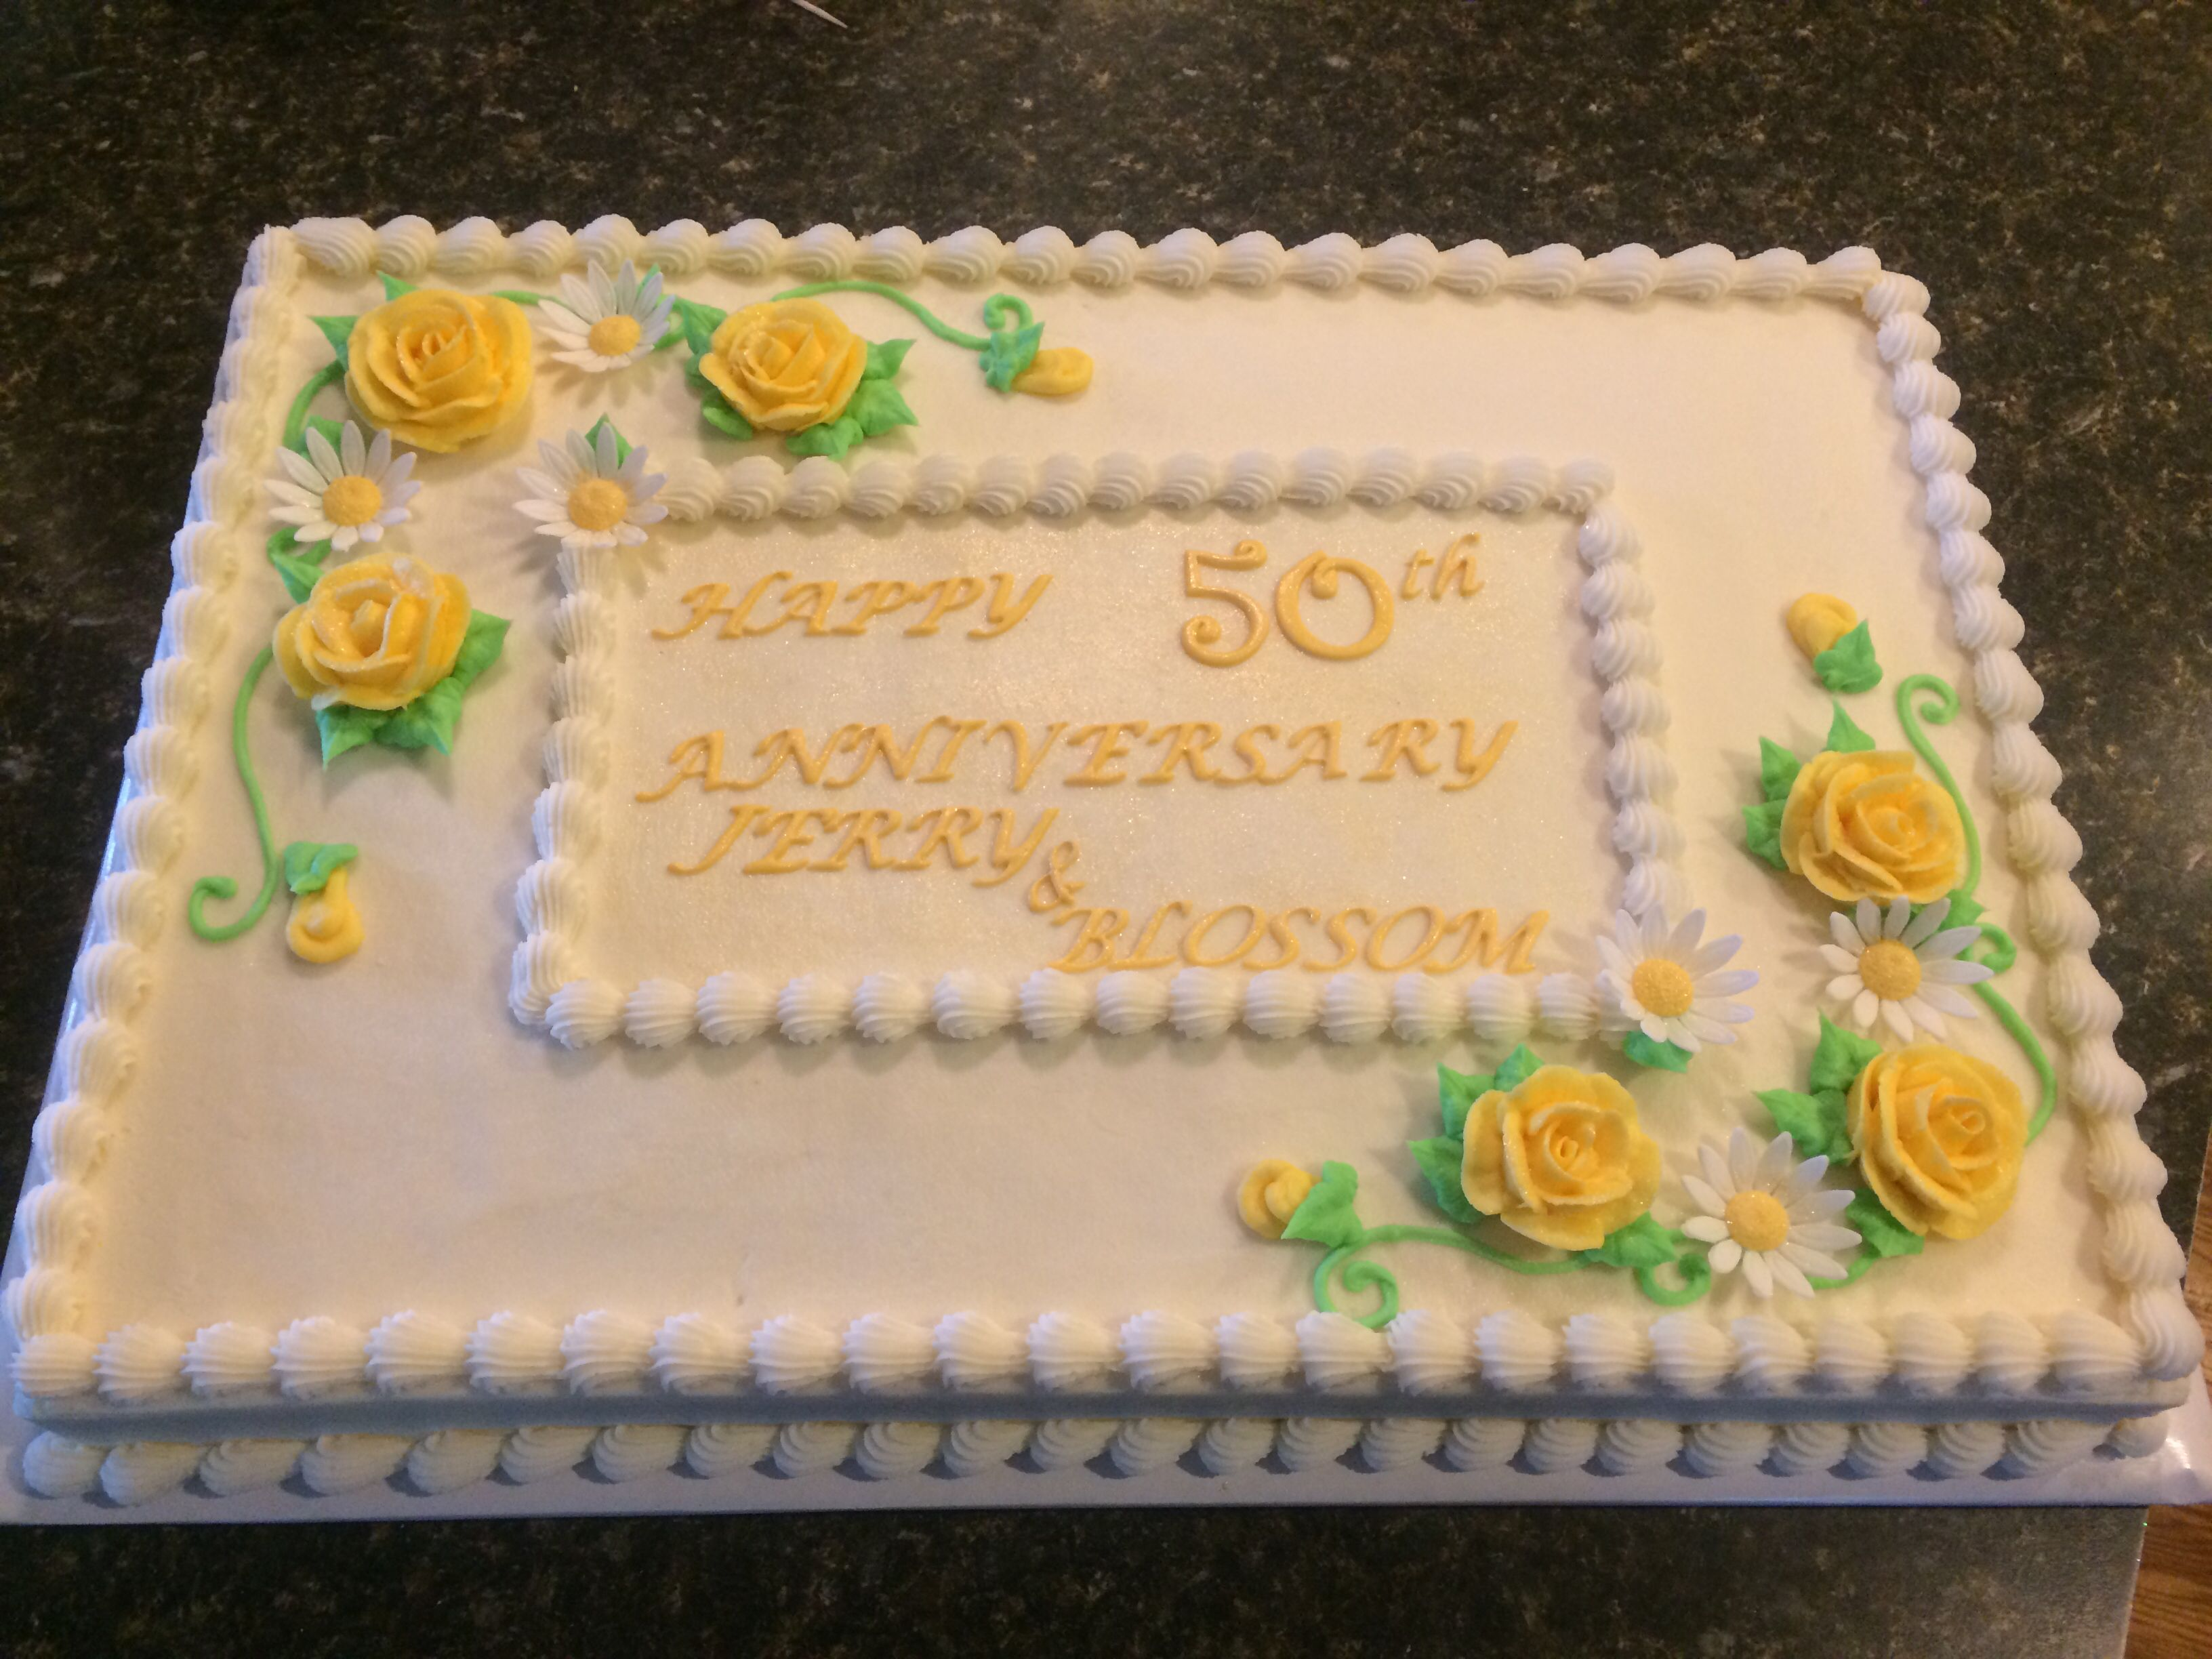 50th Anniversary Sheet Cake With Images 50th Anniversary Cakes